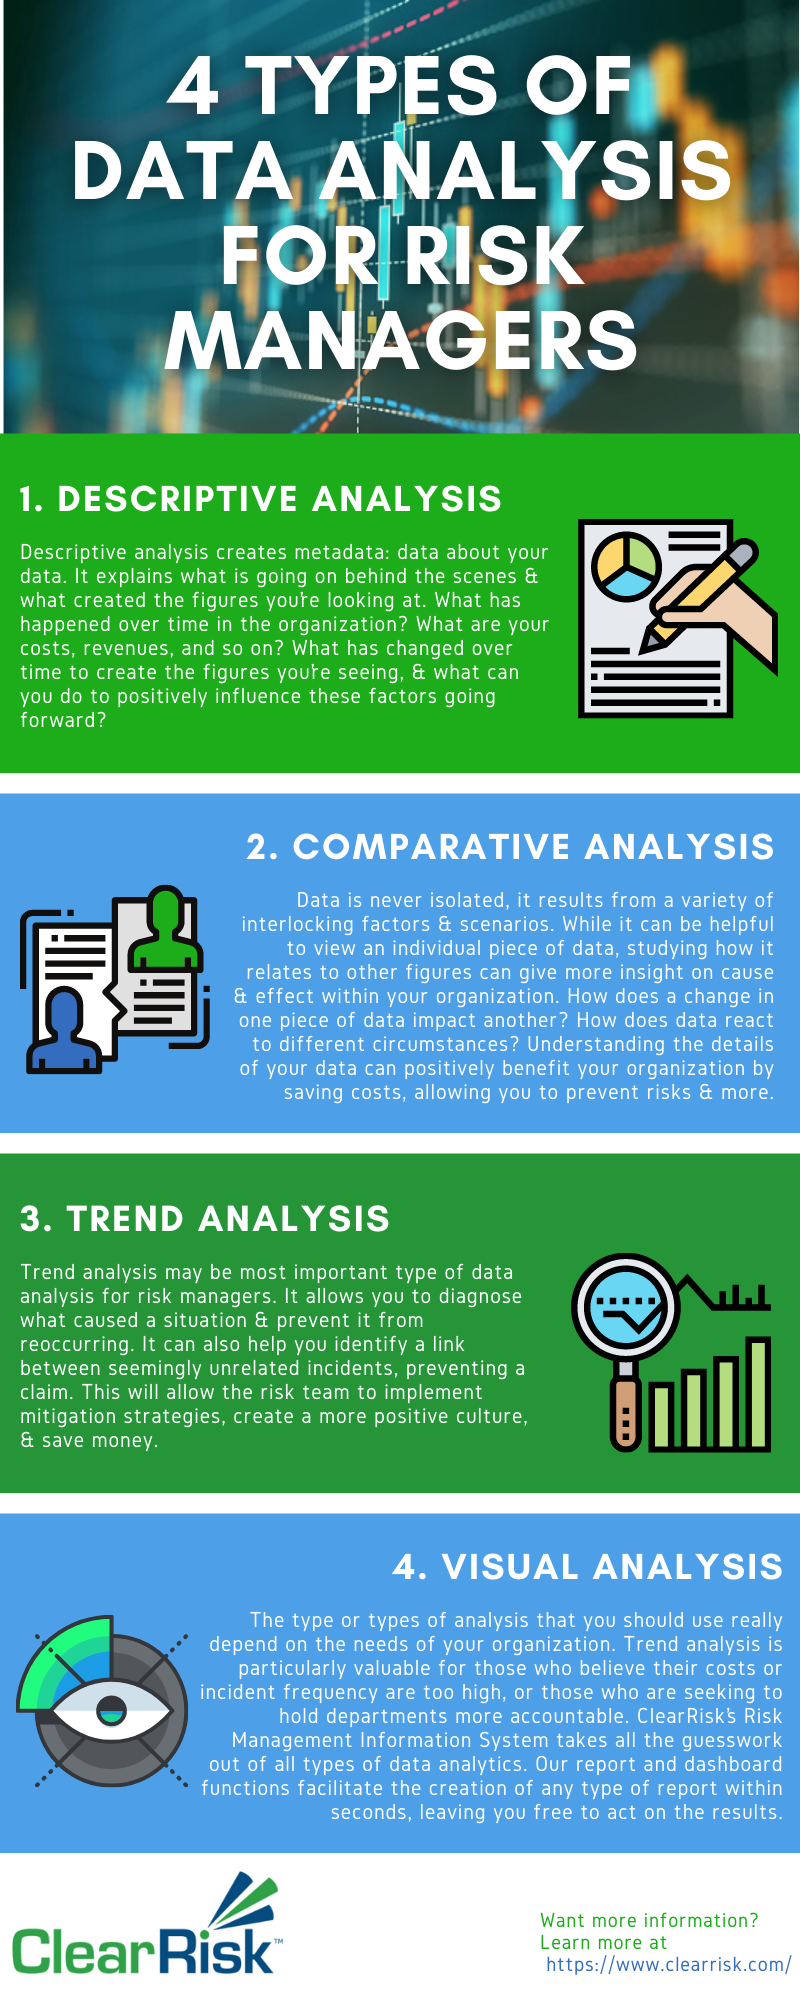 4 Types of Data Analysis for Risk Managers (Infographic)